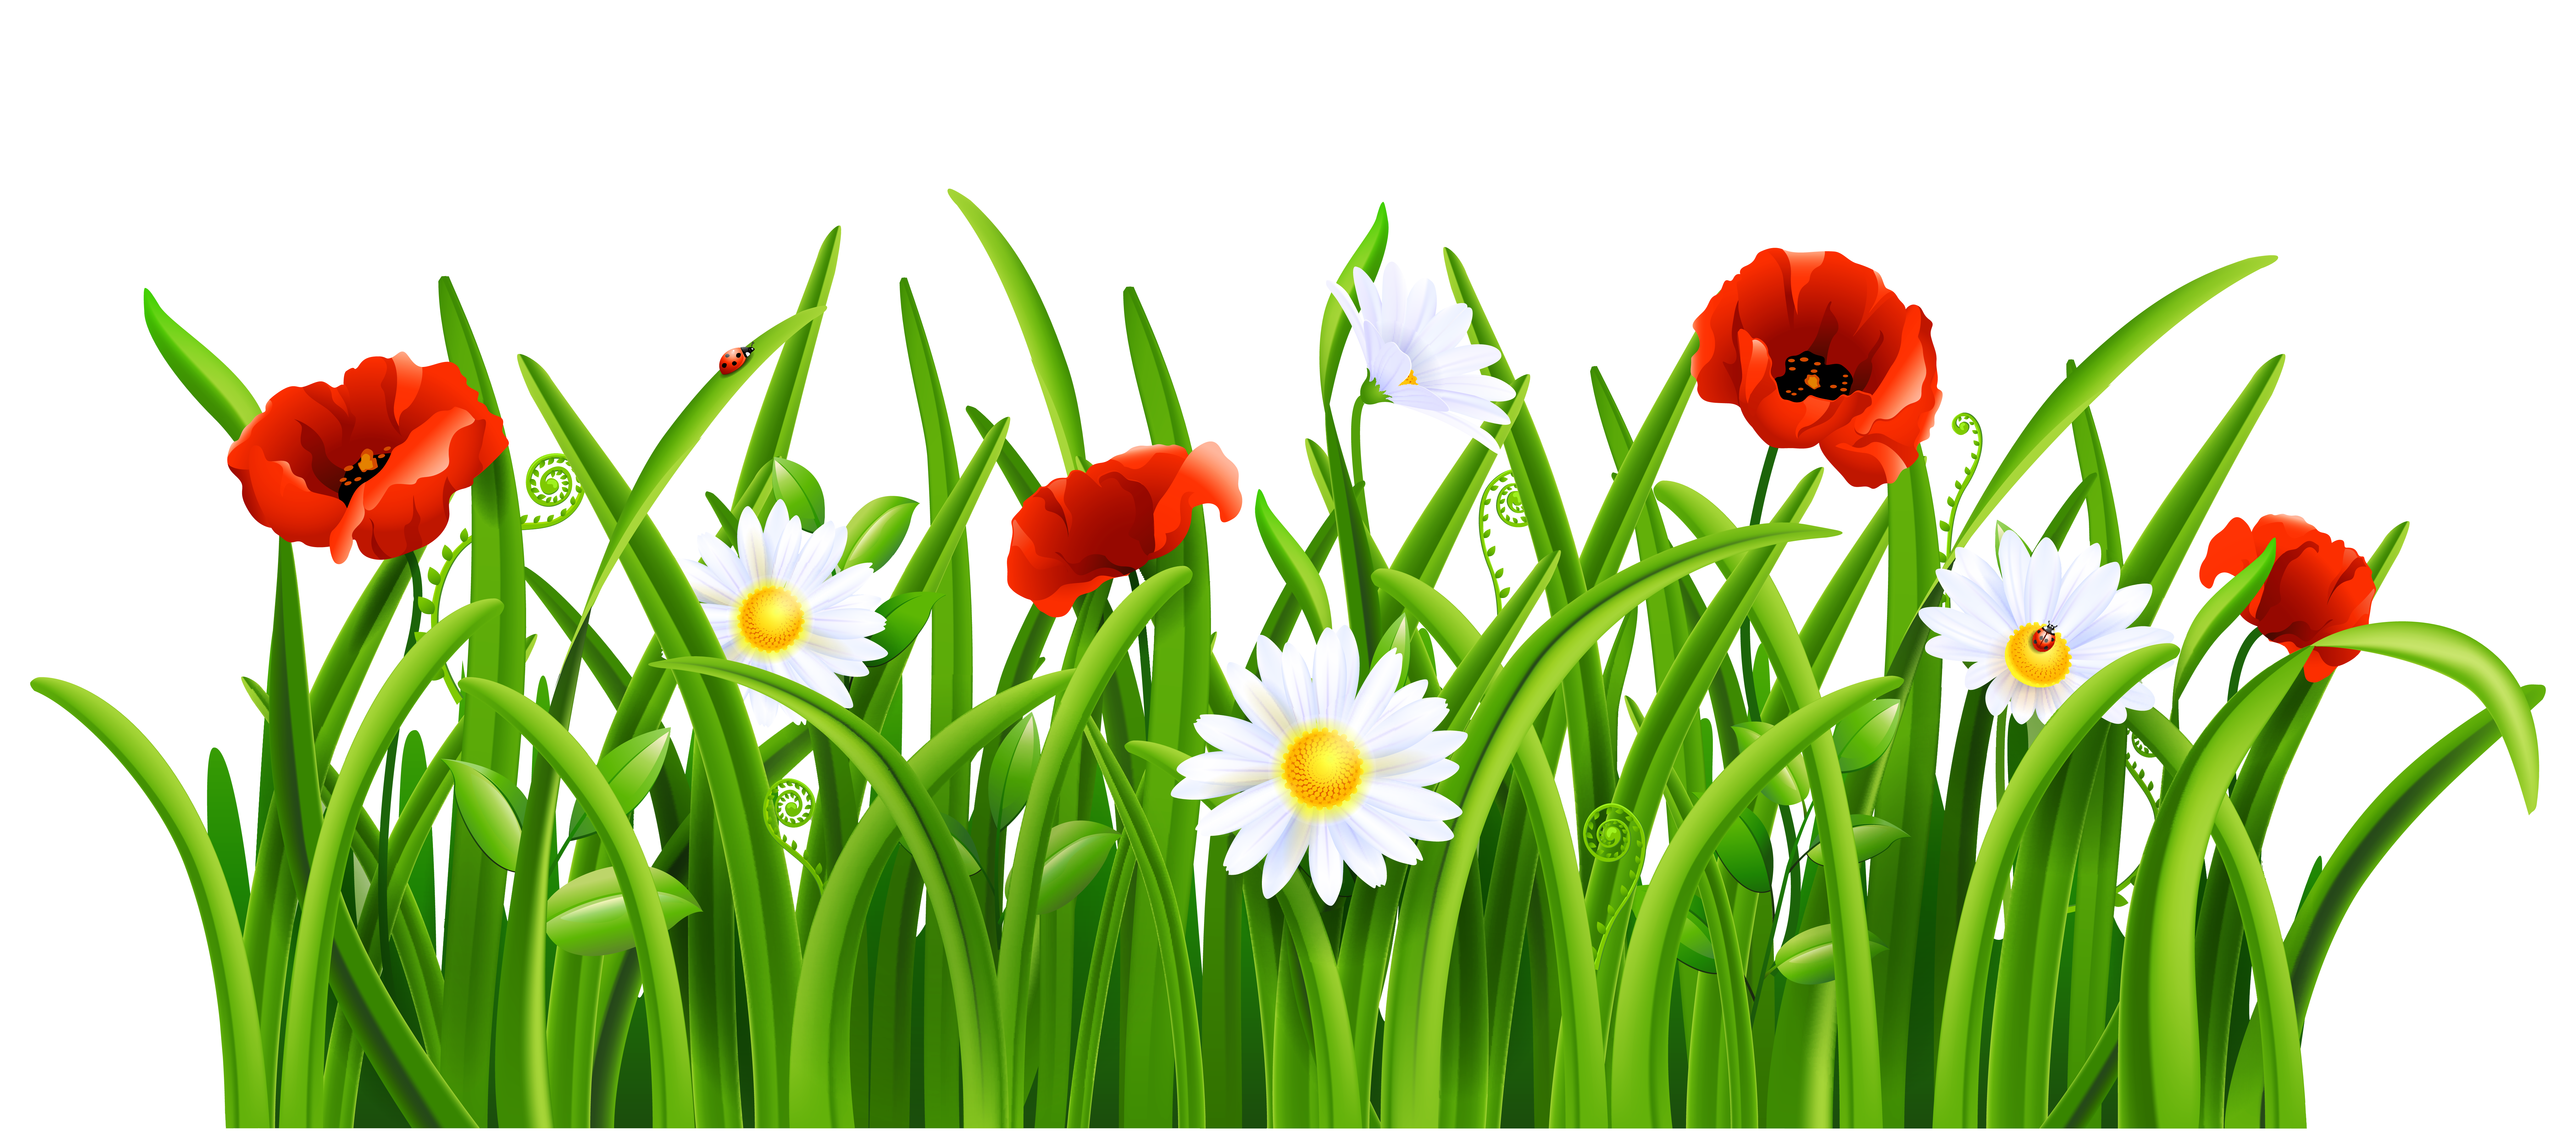 Flowers and grass clipart jpg royalty free library Flowers and grass clipart - ClipartFest jpg royalty free library